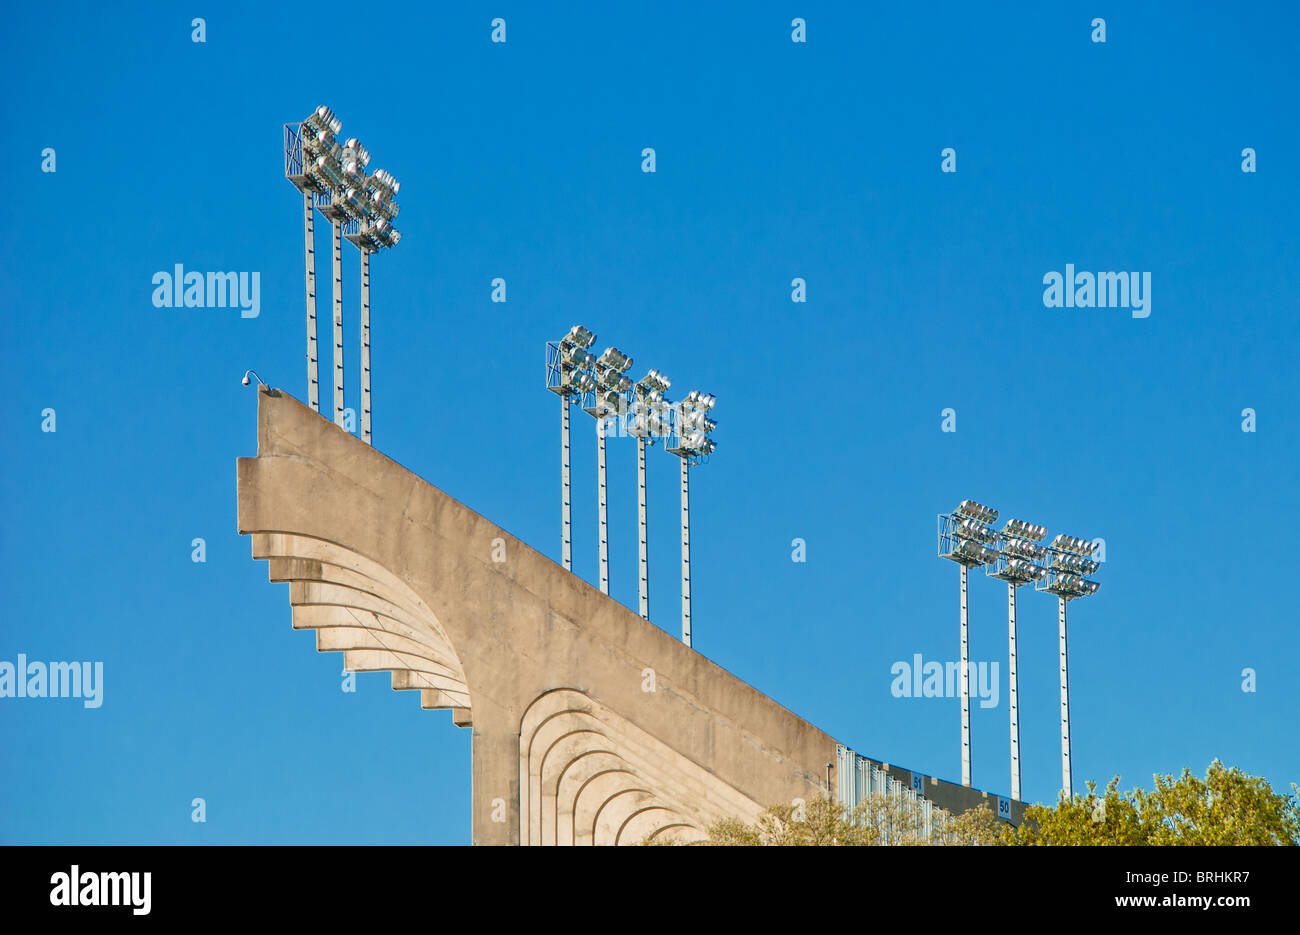 Football stadium at Auburn University in Auburn, Alabama, USA - Stock Image